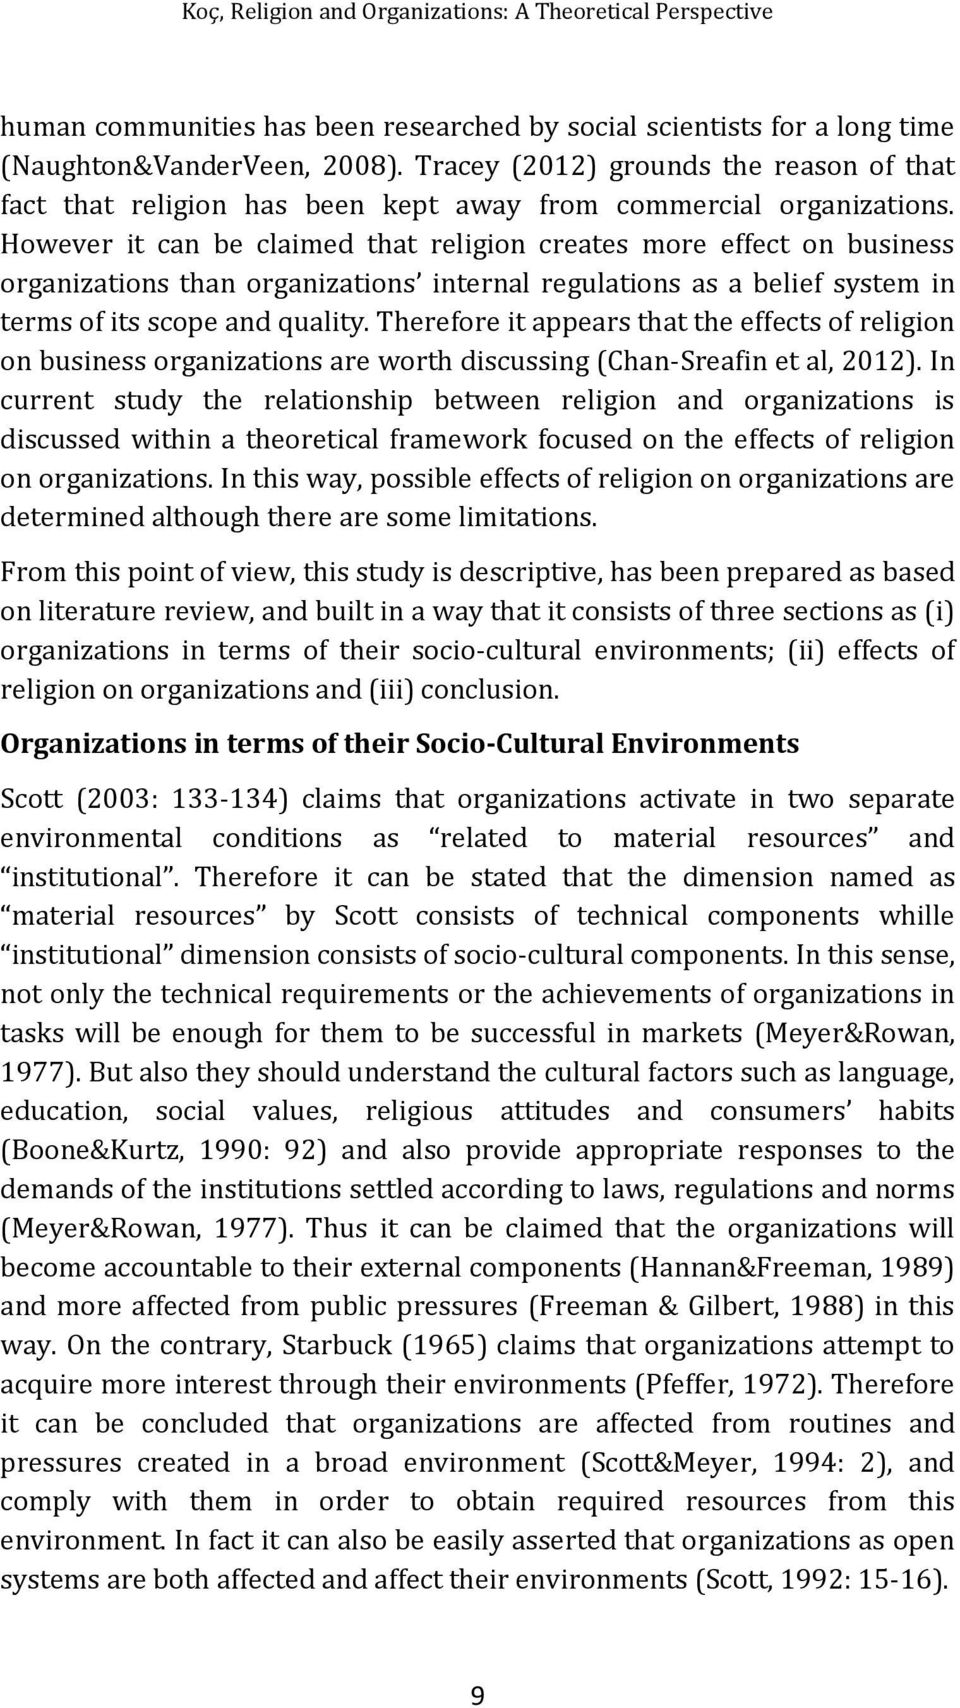 However it can be claimed that religion creates more effect on business organizations than organizations internal regulations as a belief system in terms of its scope and quality.